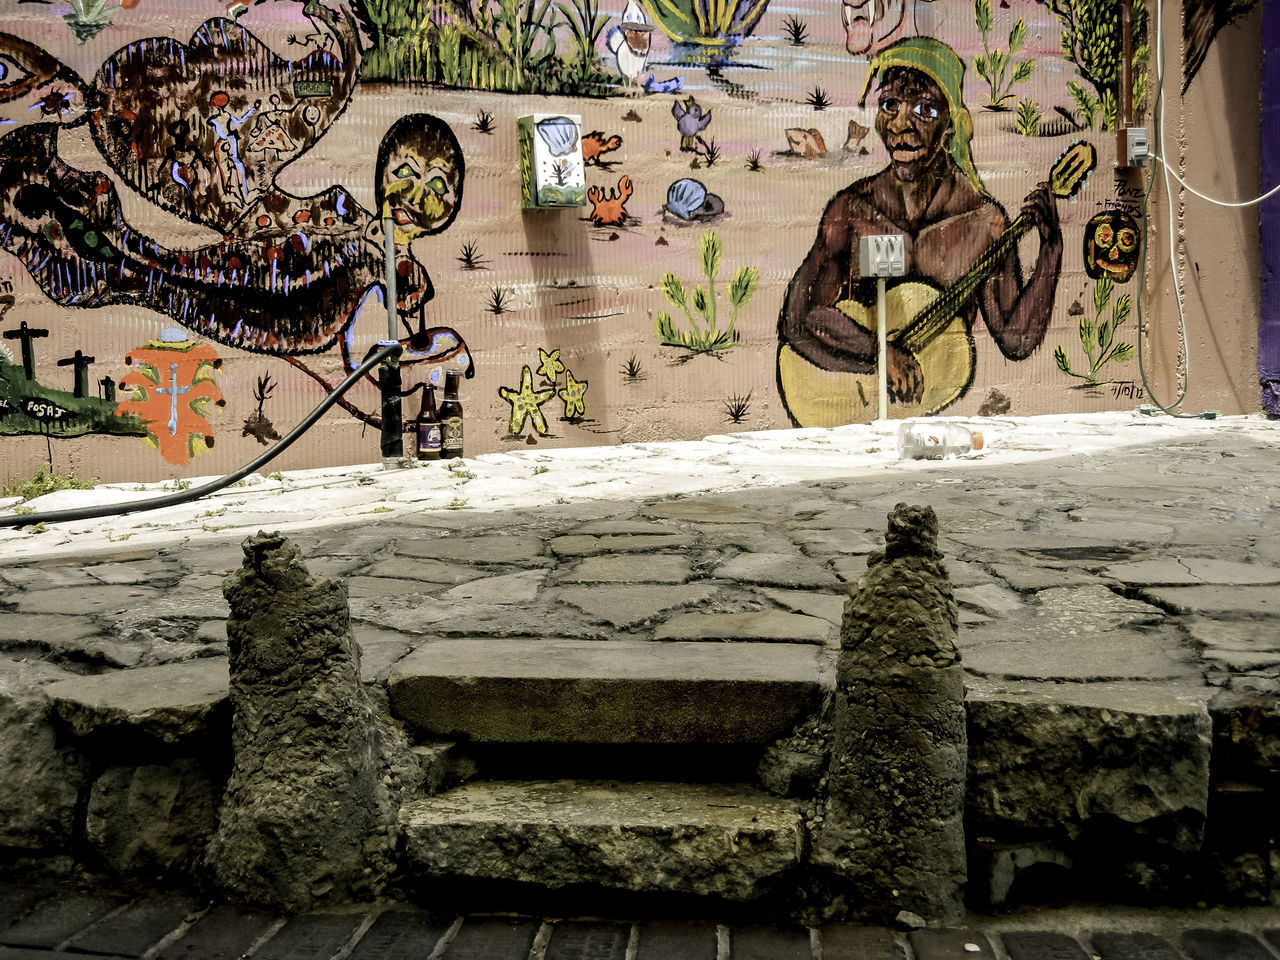 """An urban patio area featuring a tropical-styled, hand-painted mural on building wall. Depictions include a man playing guitar, tropical flora & fauna, and preternatural """"spirit"""" following the sound of music. Art Art, Drawing, Creativity Creativity Culture Day Full Frame Mural Outdoors Painting Patio Stone Stones Textured  Tropical Urban Art Urban Landscape Wall Weathered"""